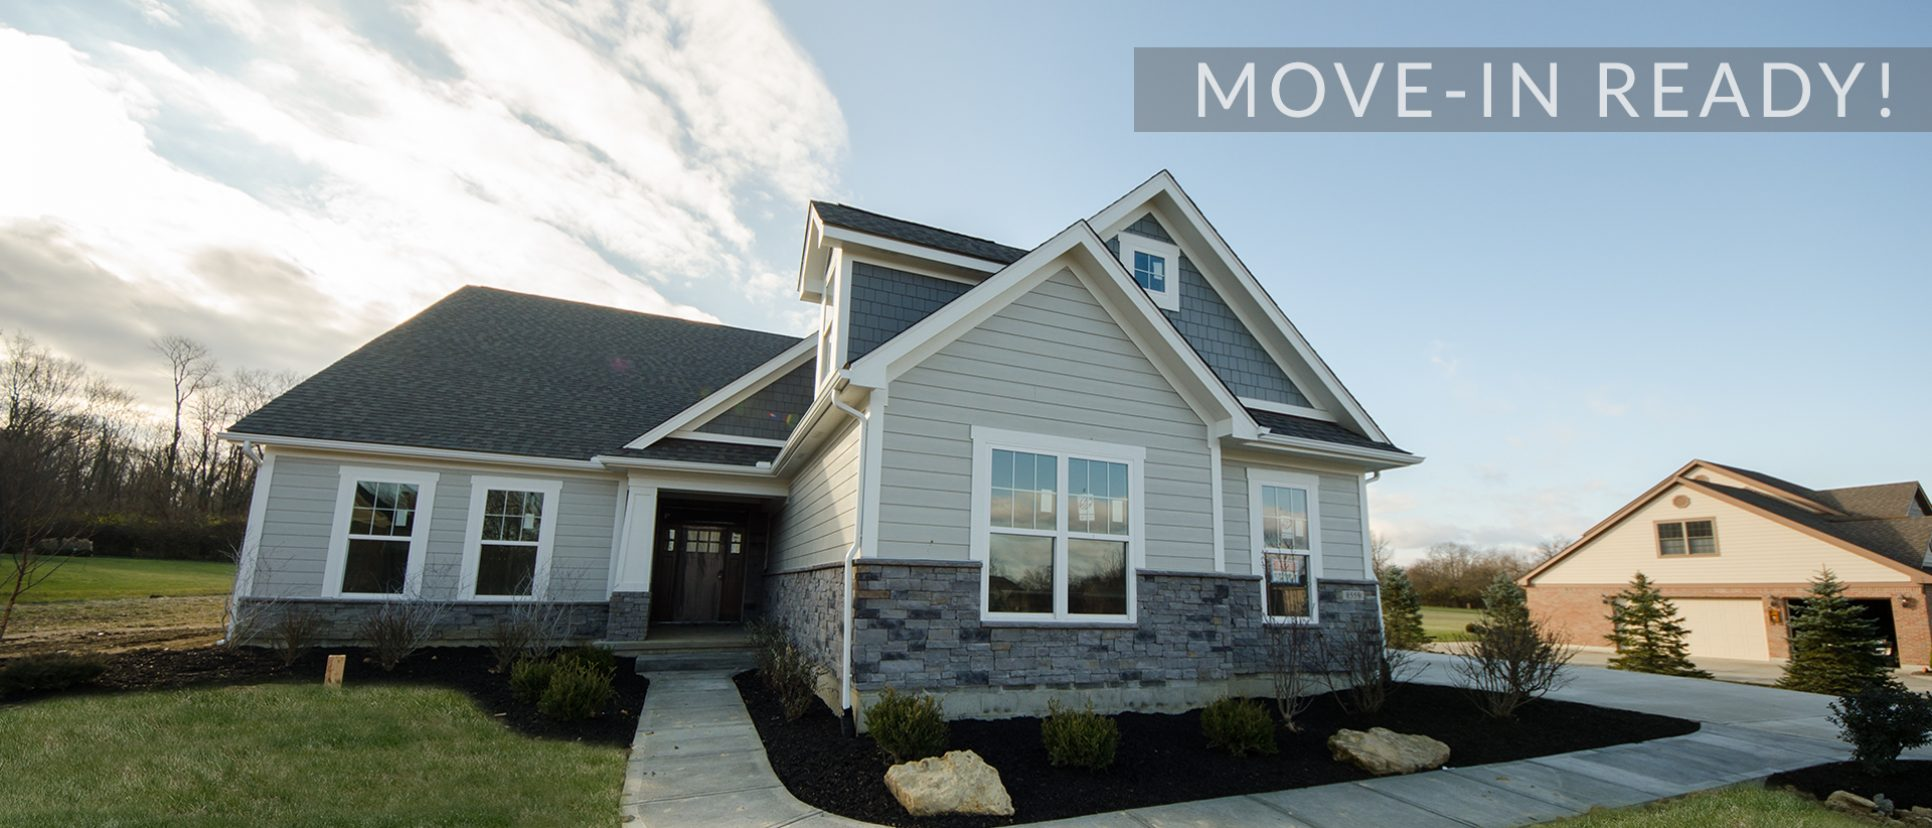 The Jocelyn, a custom move-in ready home by Design Homes and Development.